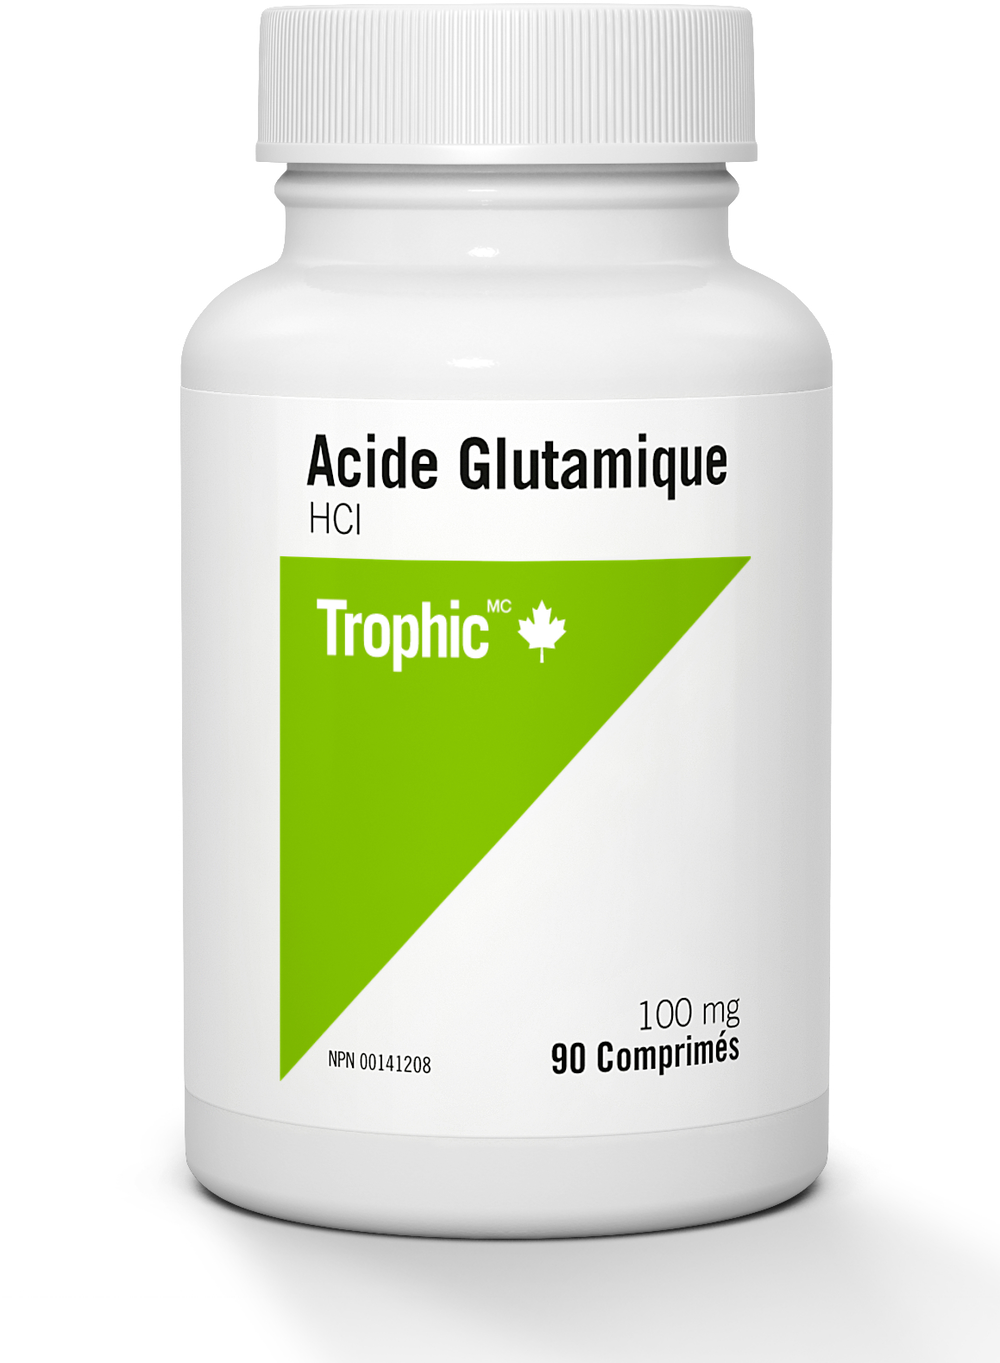 Acide Glutamique HCI